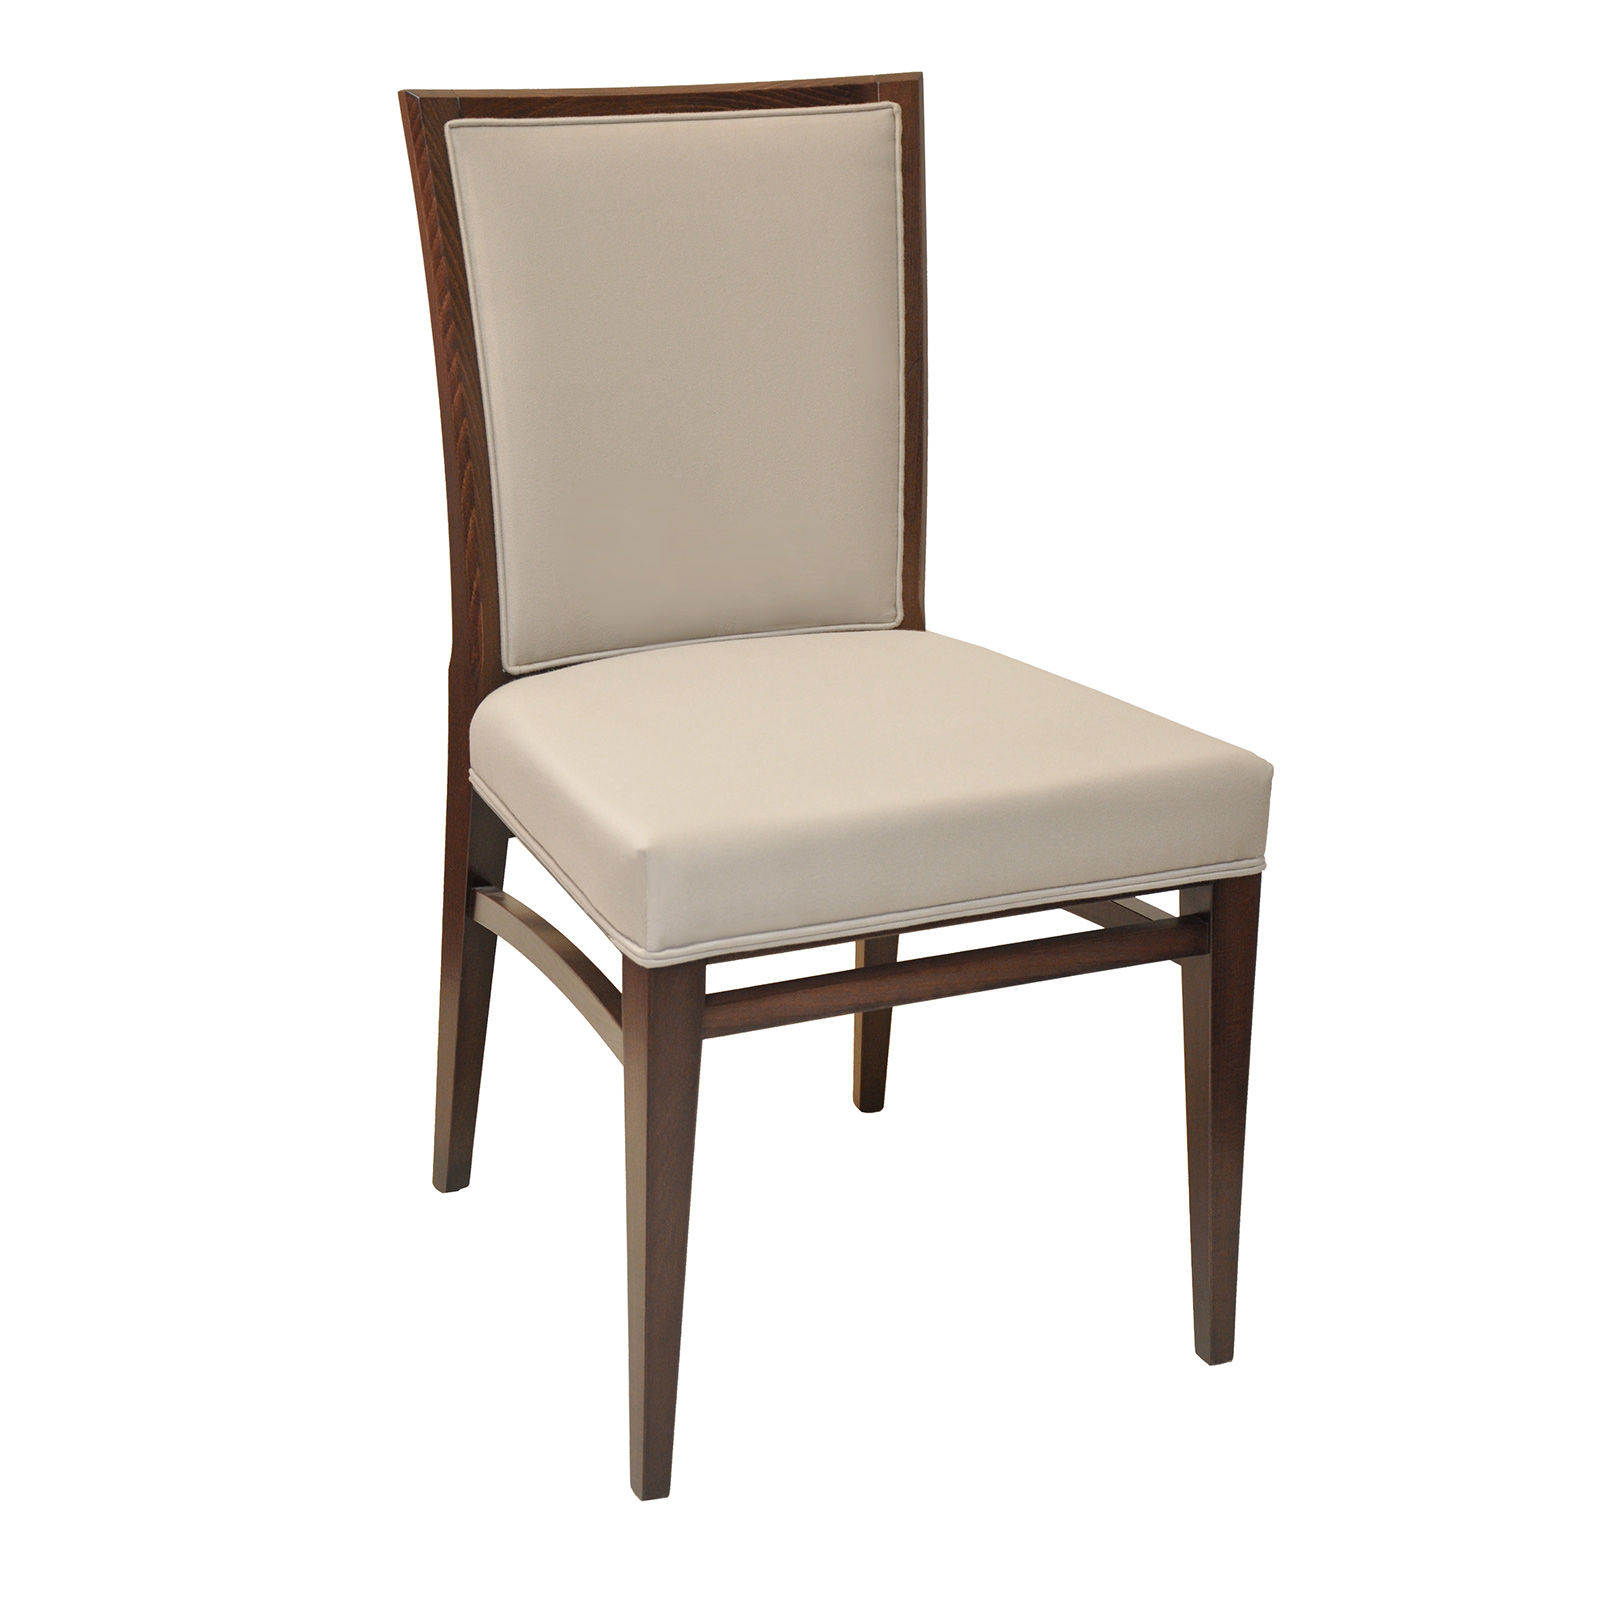 Florida Seating CN-JESSICA S GR3 chair, side, indoor